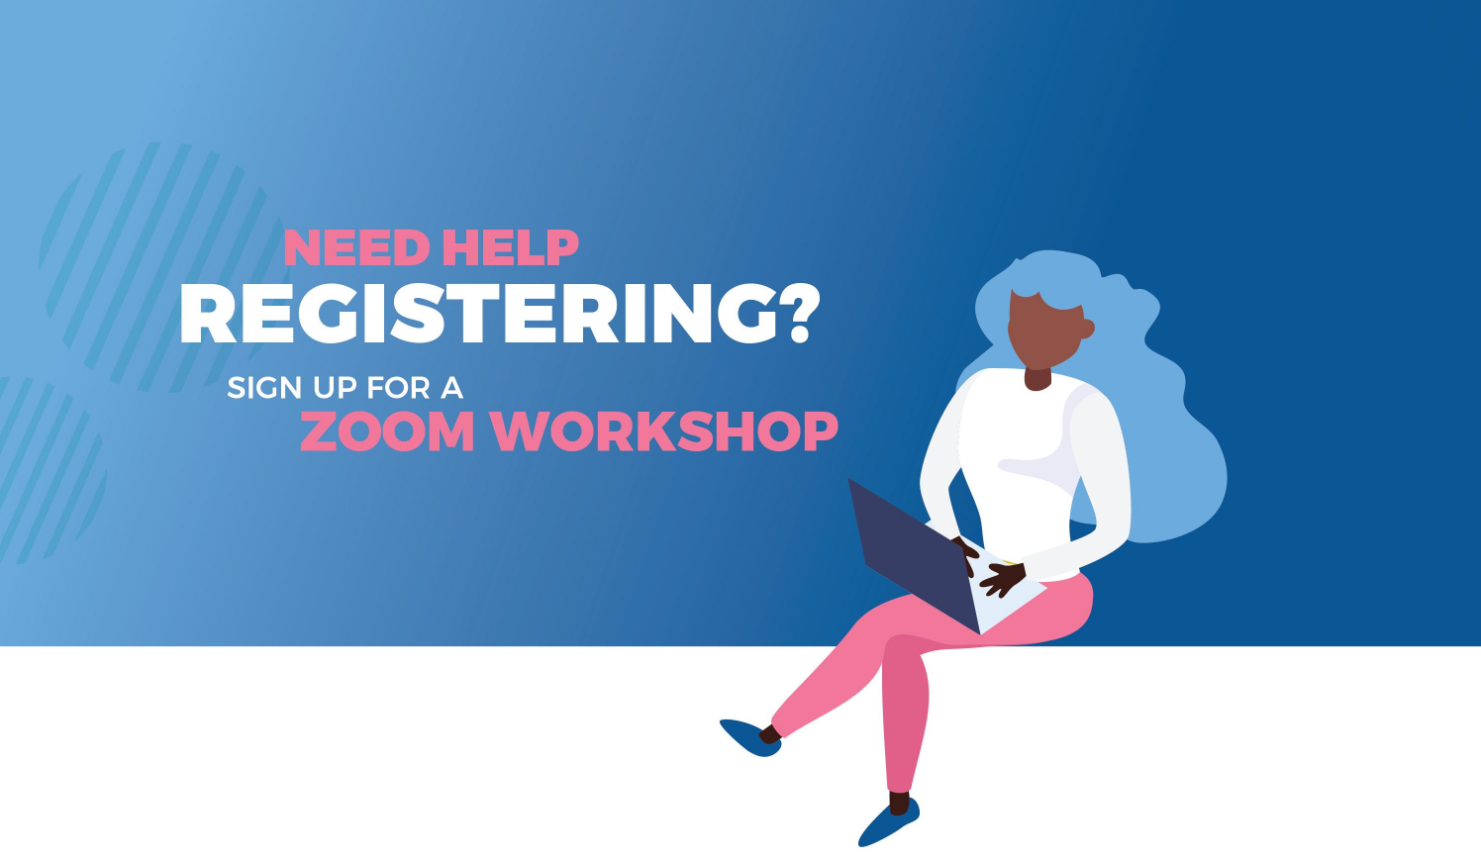 Illustration of a Female Student on a Laptop, participating in a Registration Workshop on Zoom